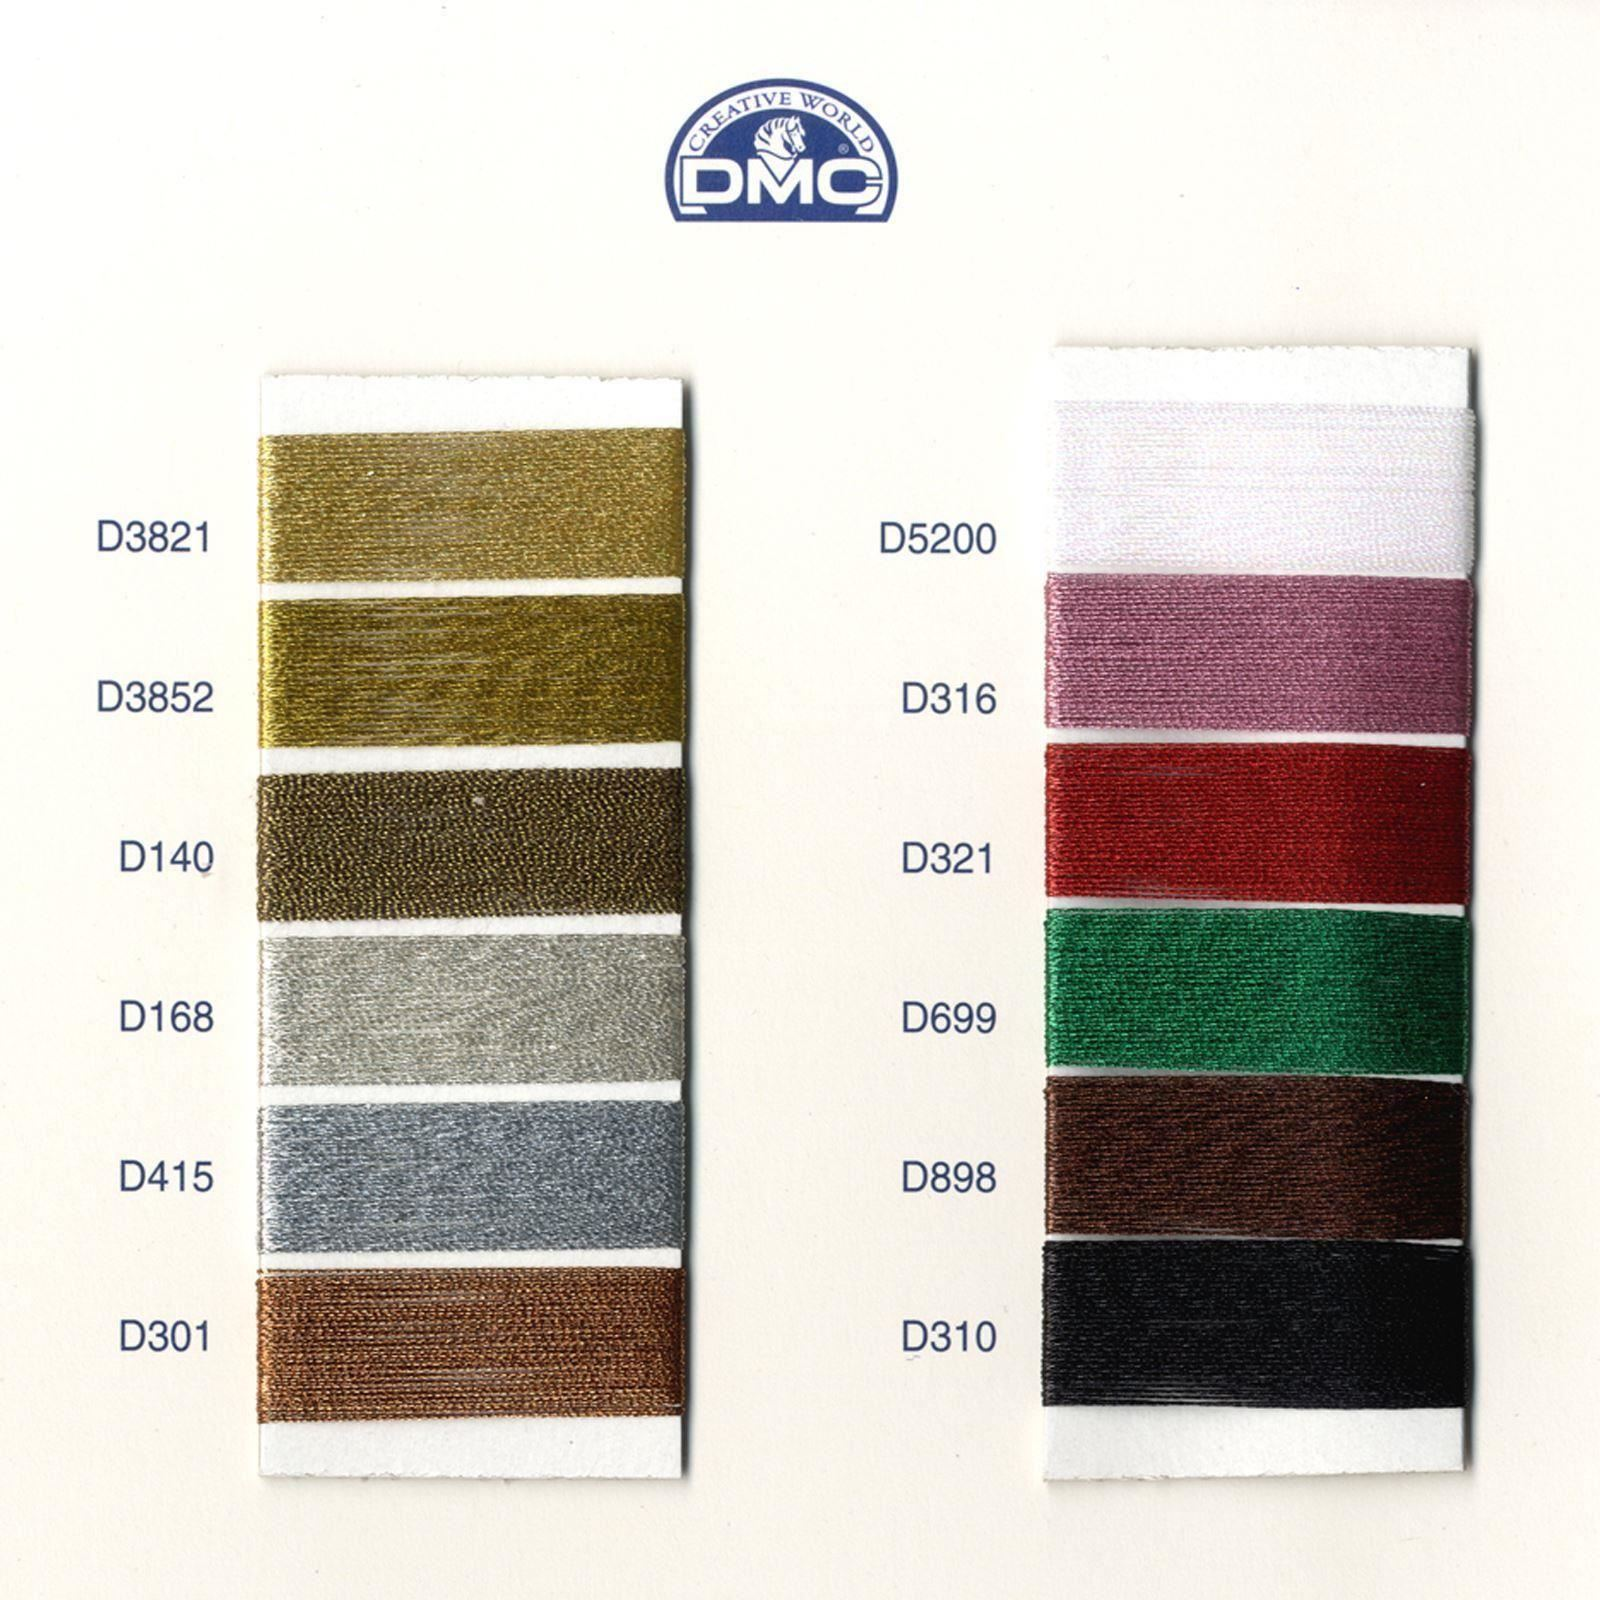 DMC-Diamant-Metallic-Embroidery-Thread-35m-Spool-Cross-Stitch thumbnail 22